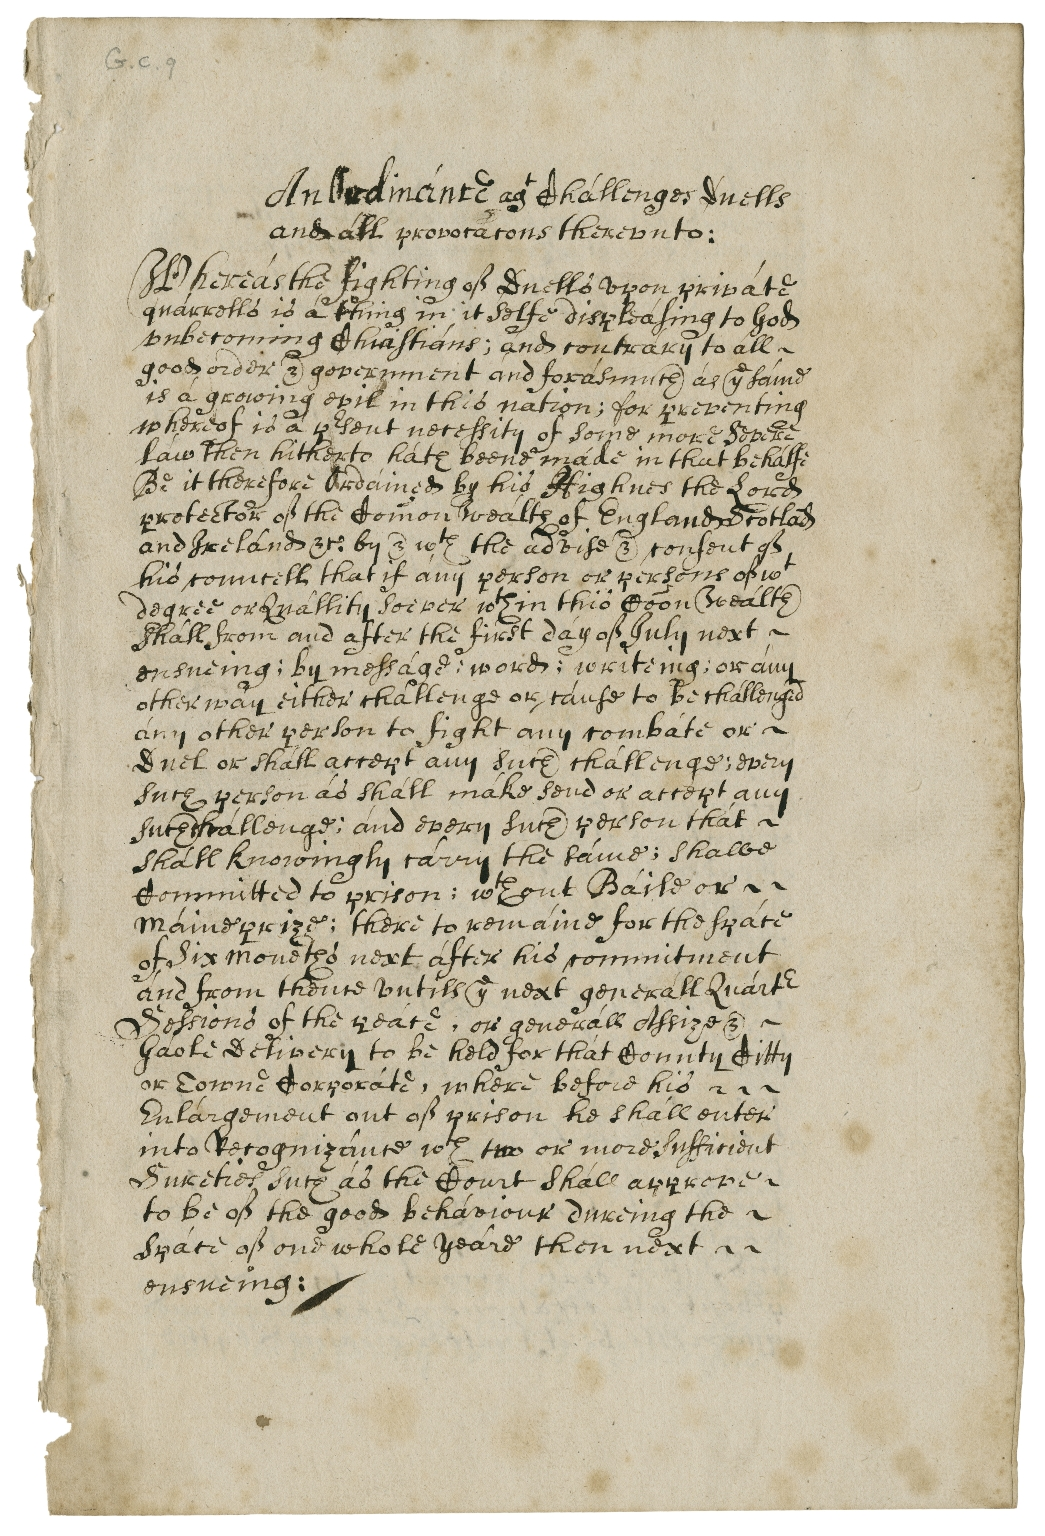 Copy of an ordinance against challenges, duels, and all provocations thereunto, ca. 1650 [manuscript], 17th century.